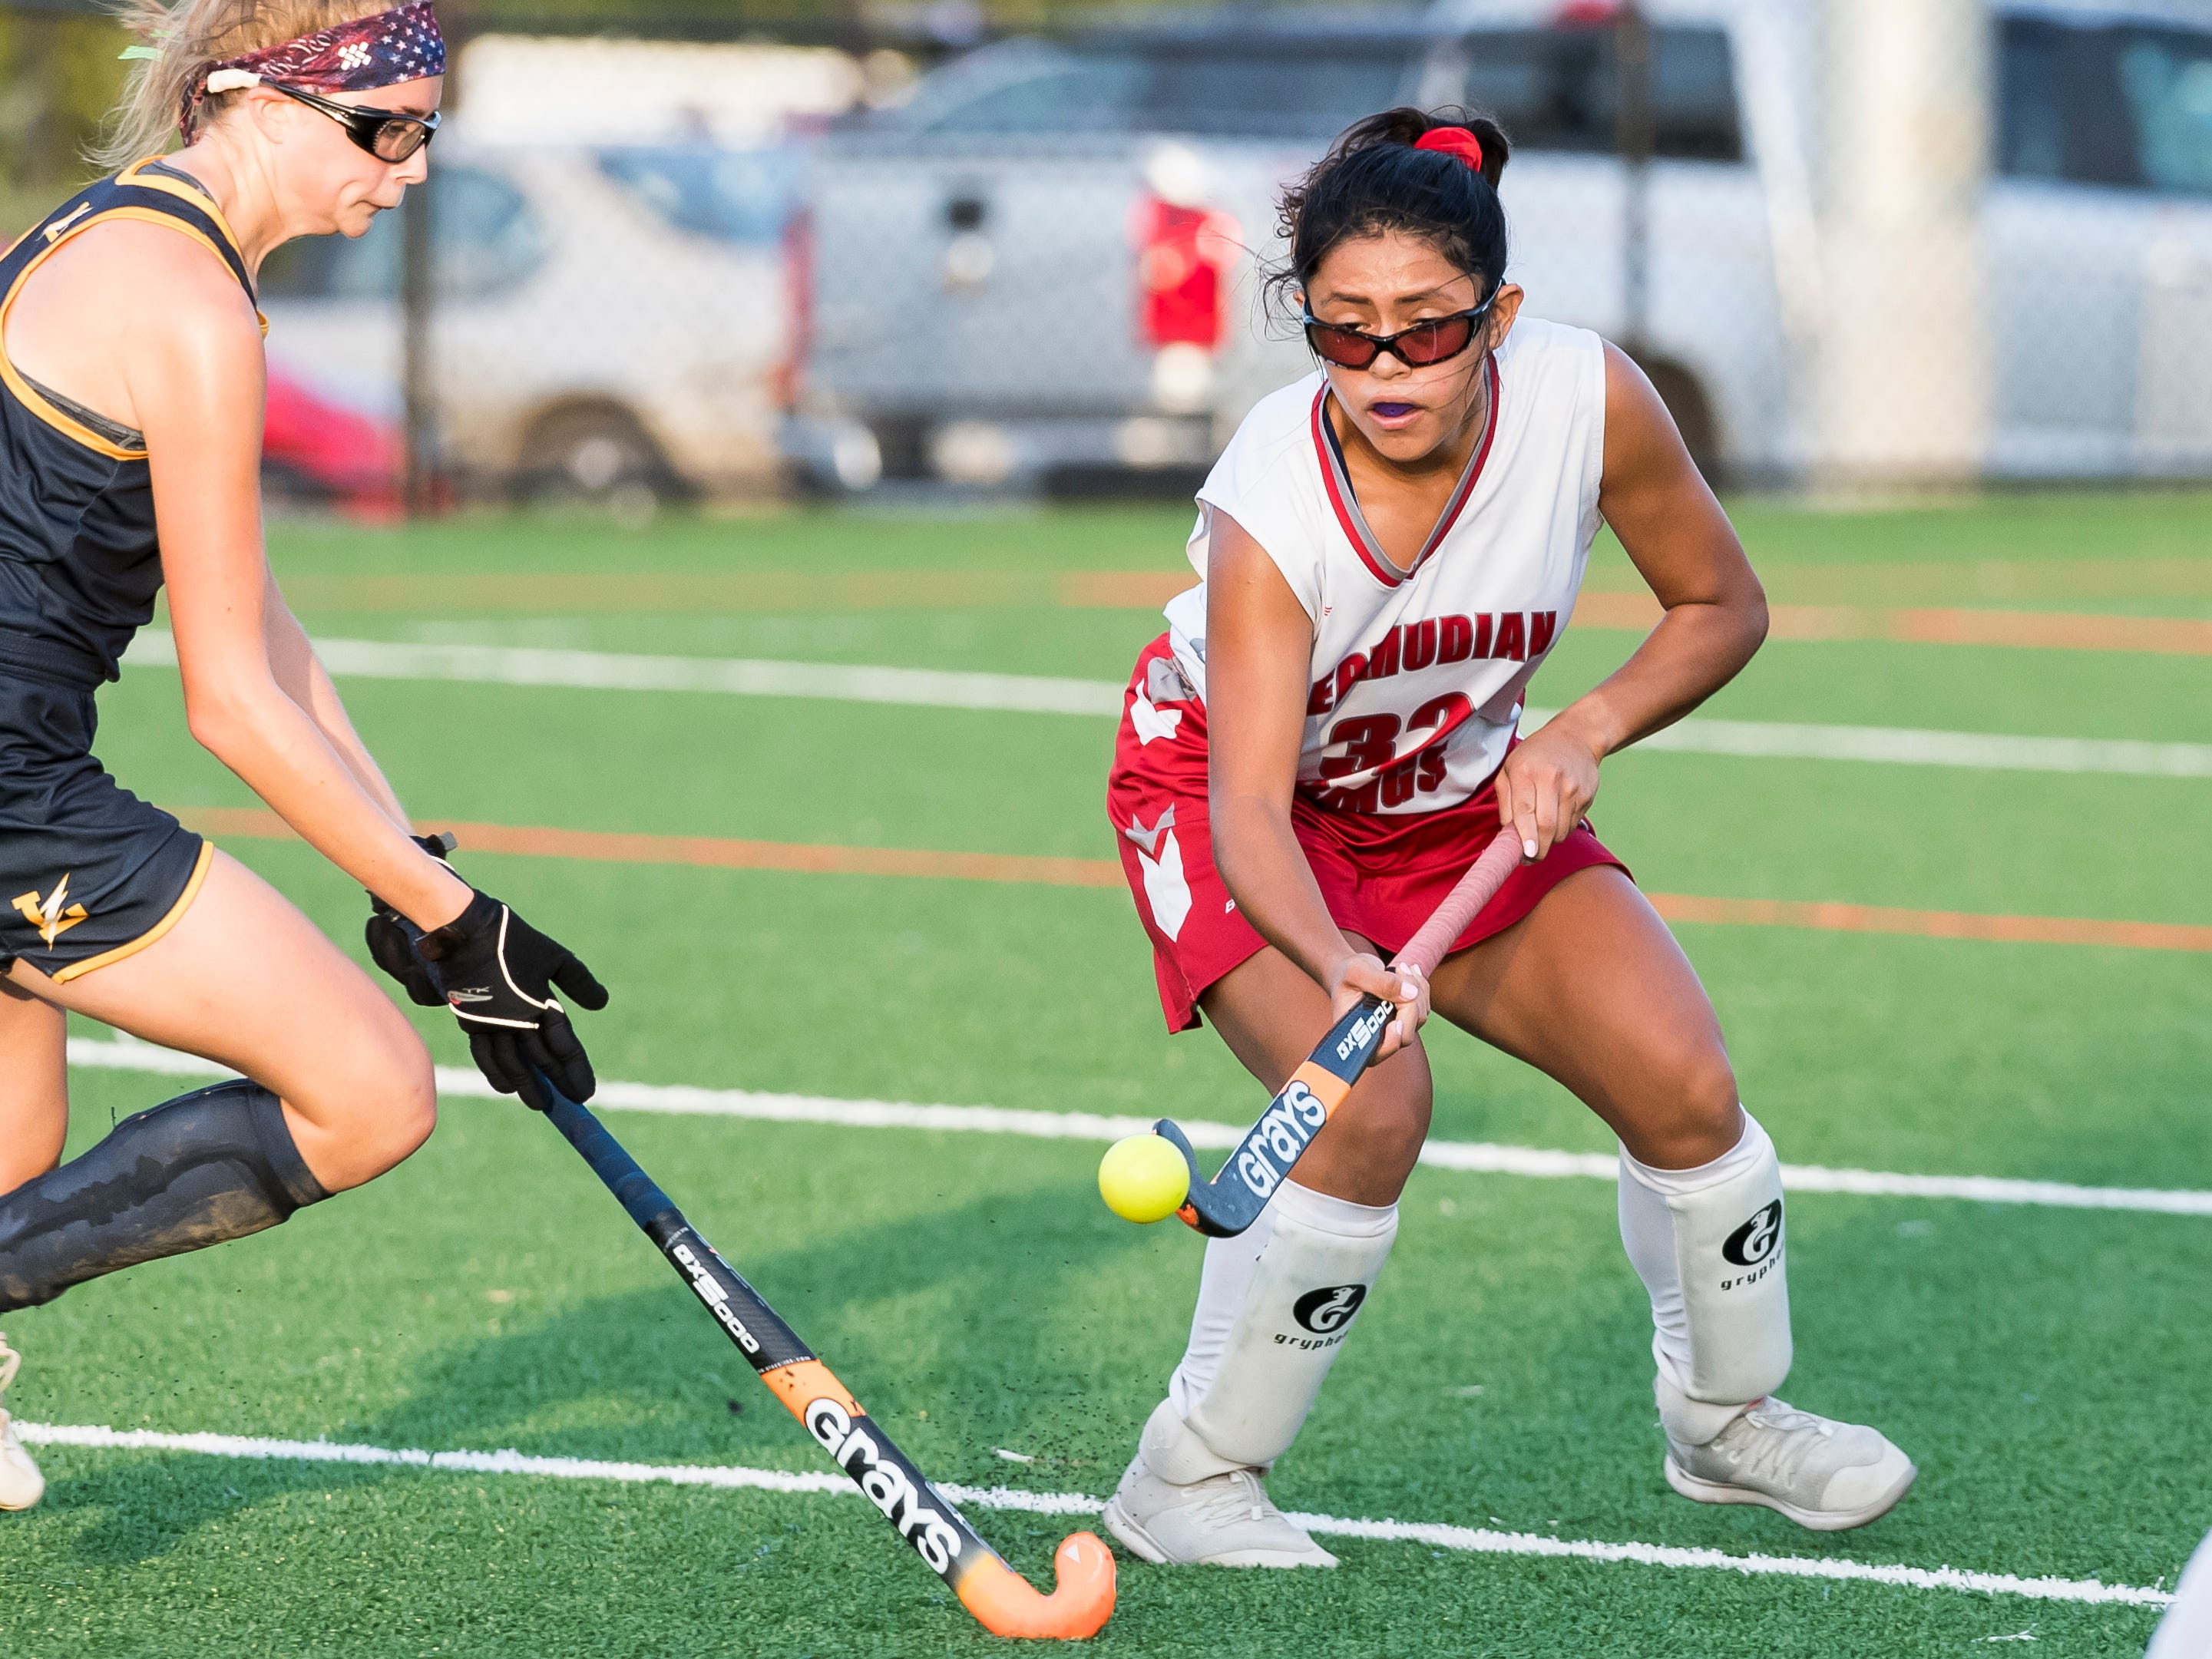 Bermudian Springs' Cecilia Lua controls the ball during play against Littlestown on Tuesday, October 9, 2018. The Eagles won 4-0.